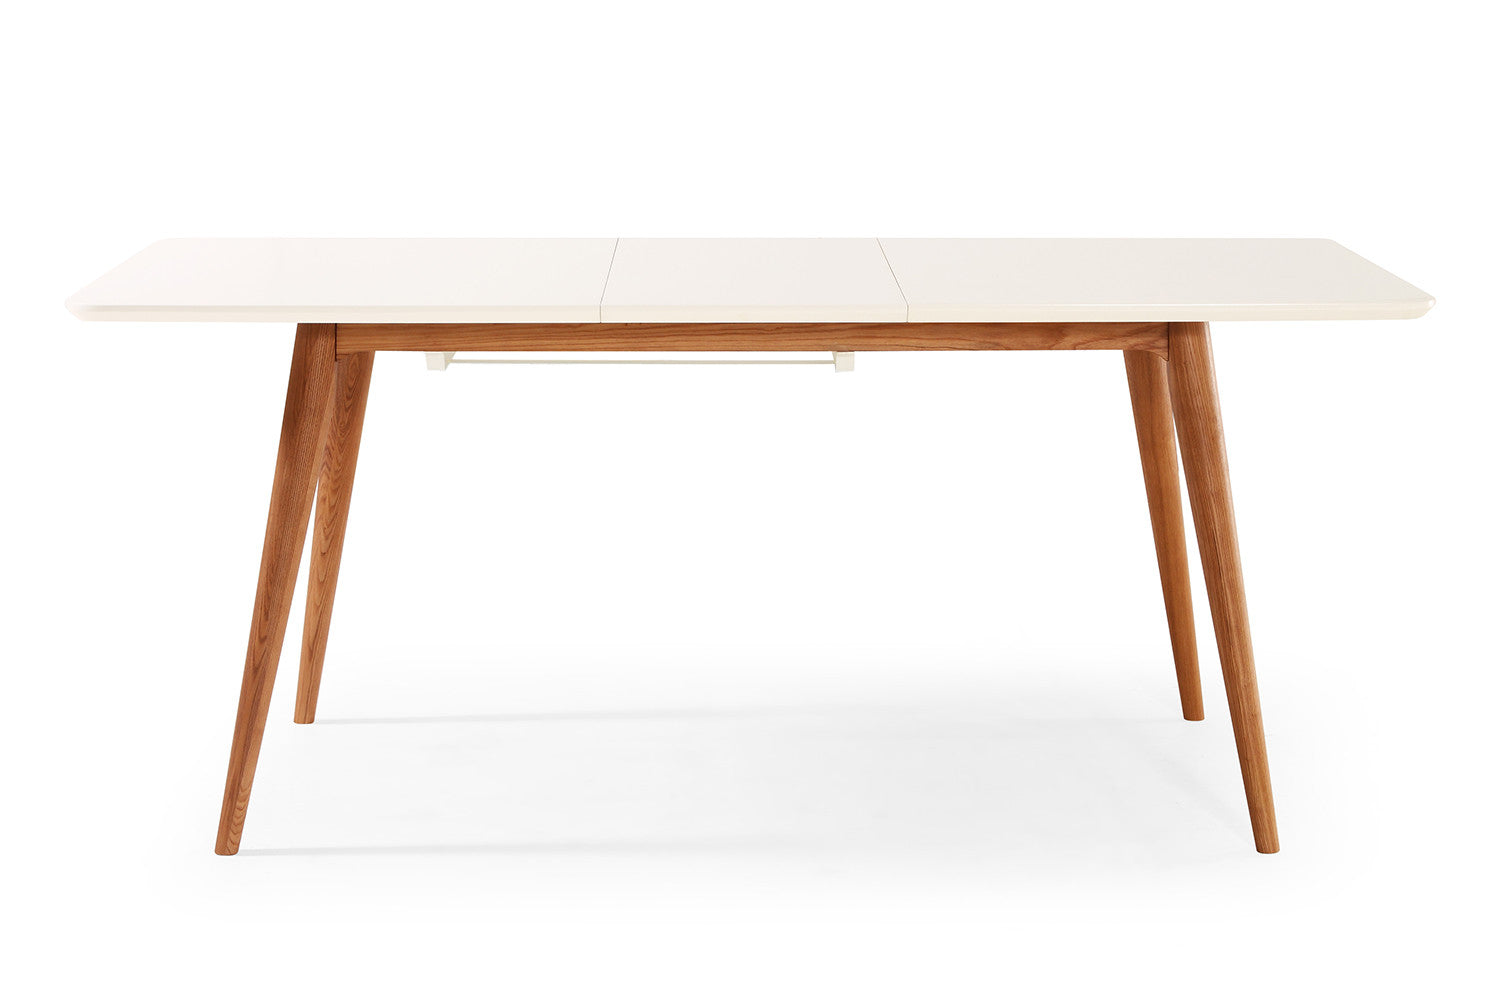 Table de salle manger extensible scandinave wyna dewarens for Table salle a manger rallonge design